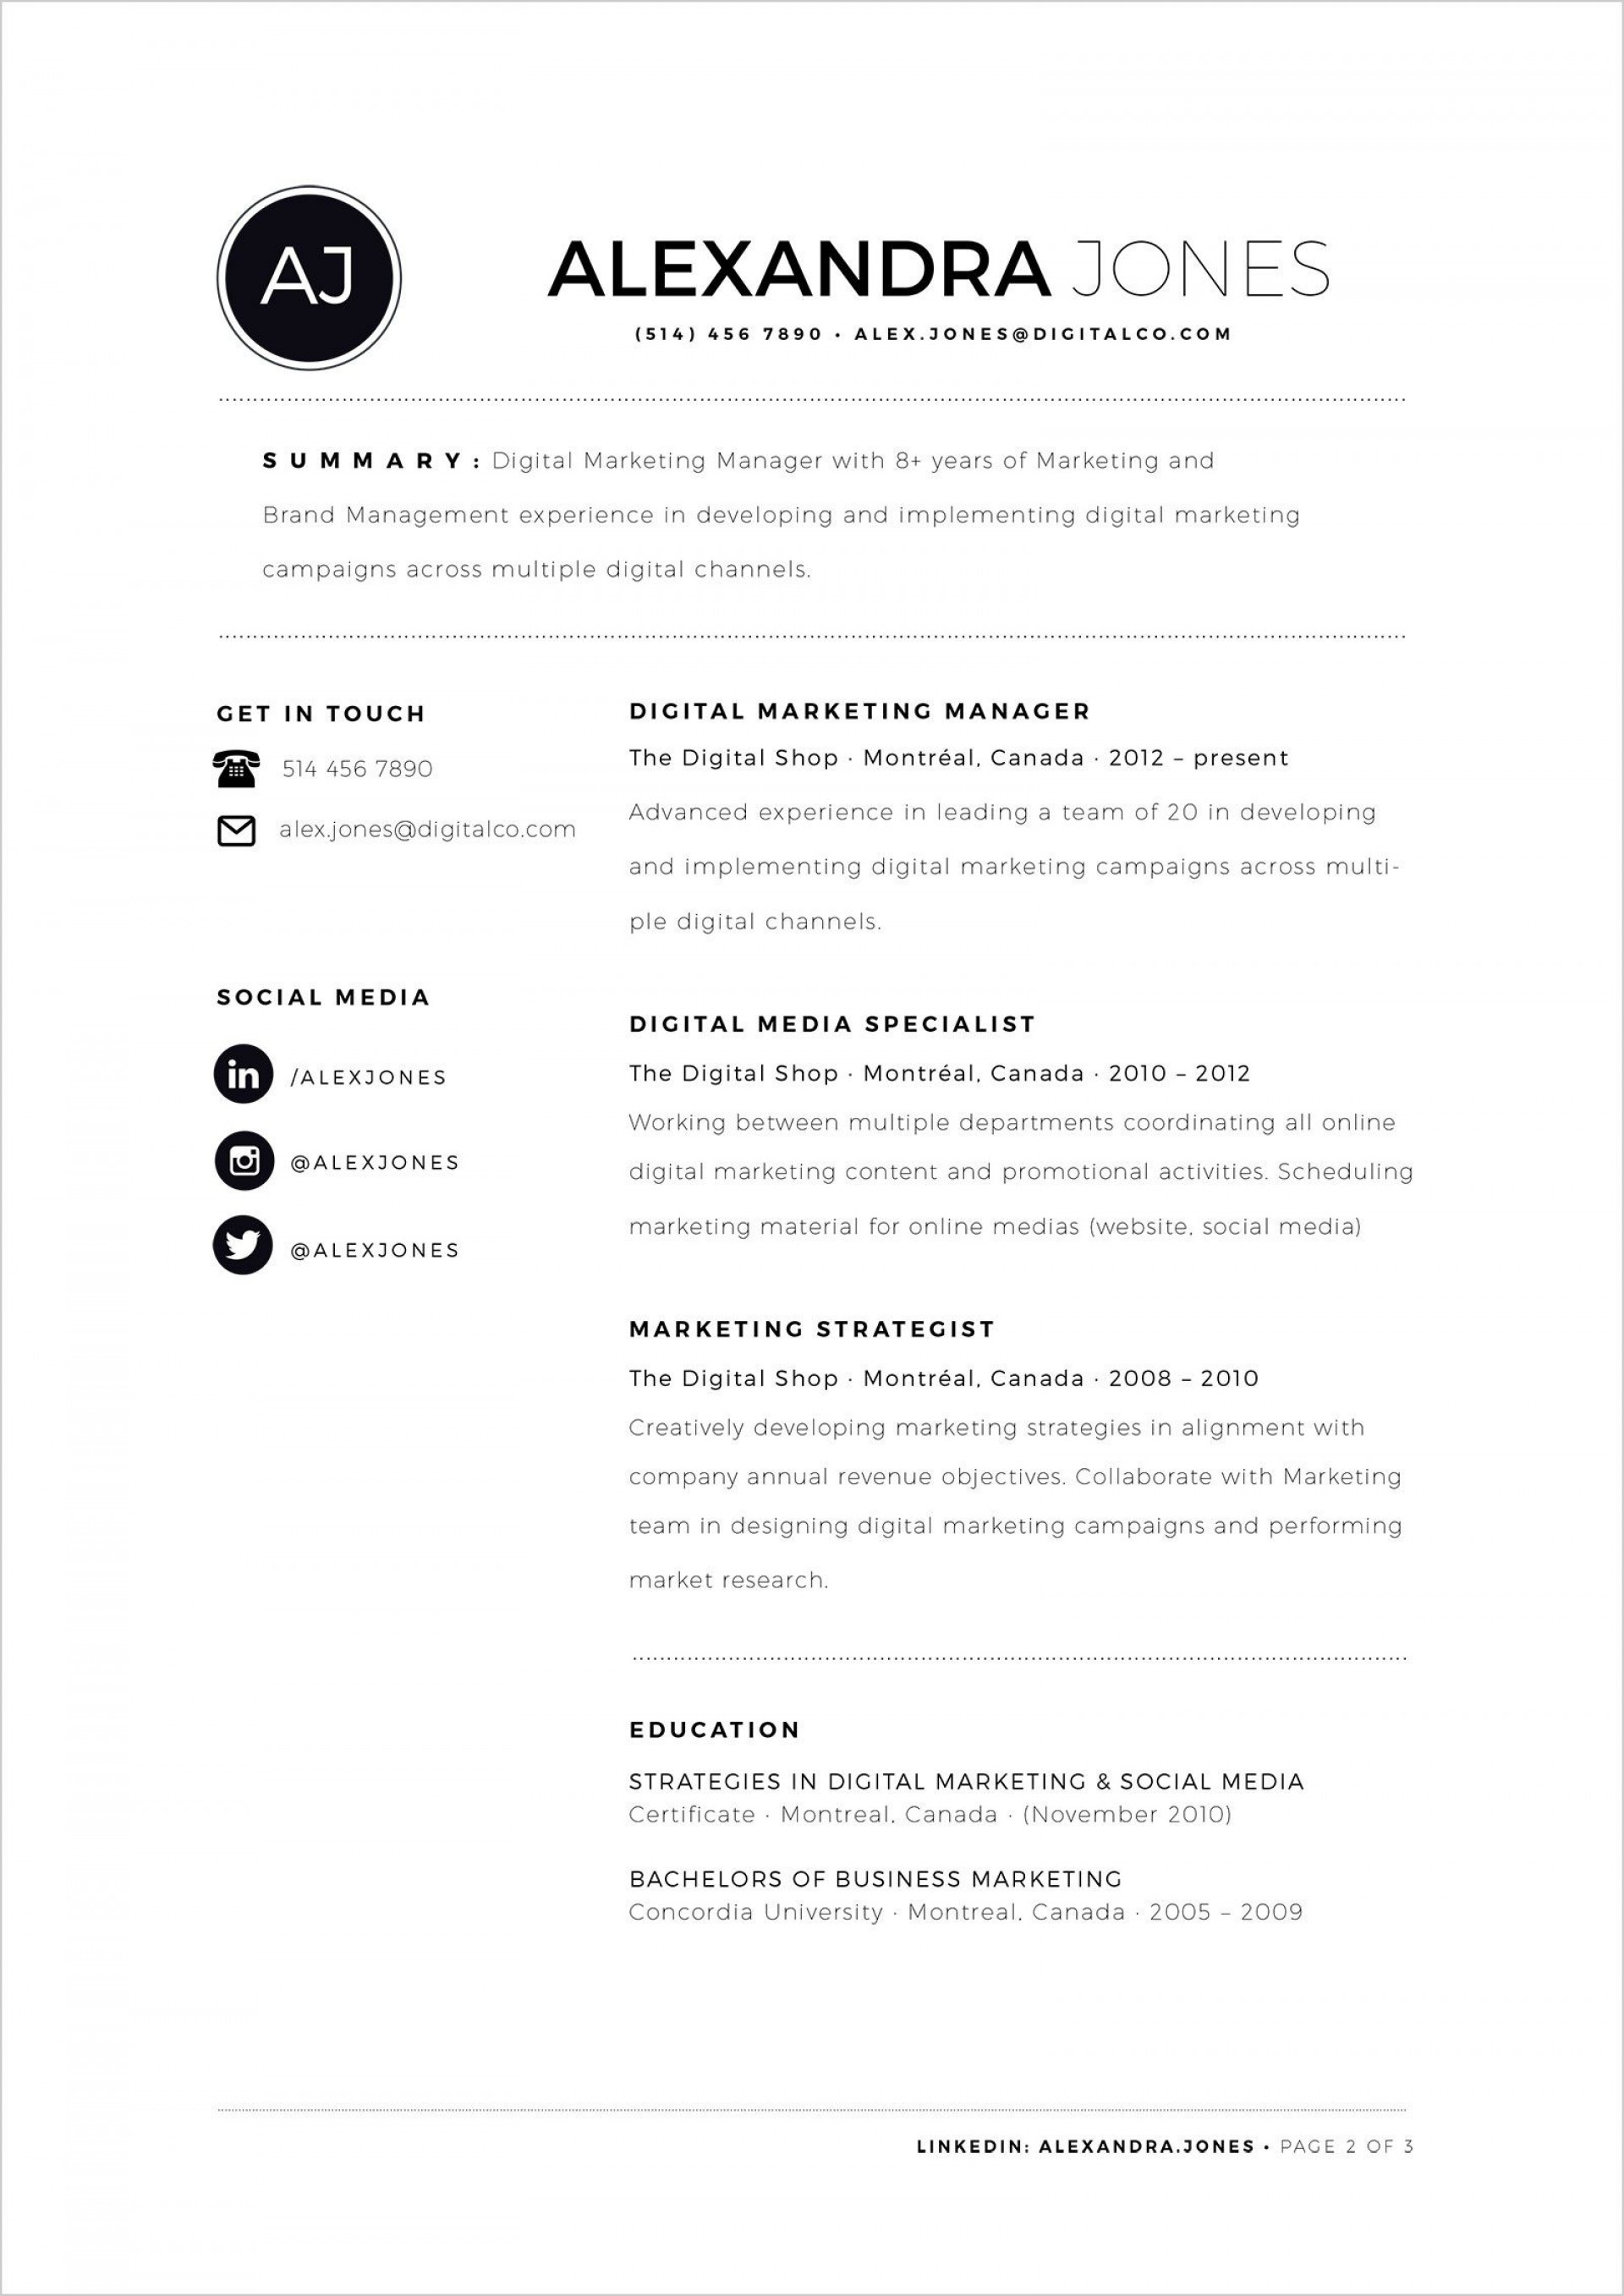 006 Fascinating Resume Template For Free Highest Quality  Best Word Freelance Writer Microsoft1920